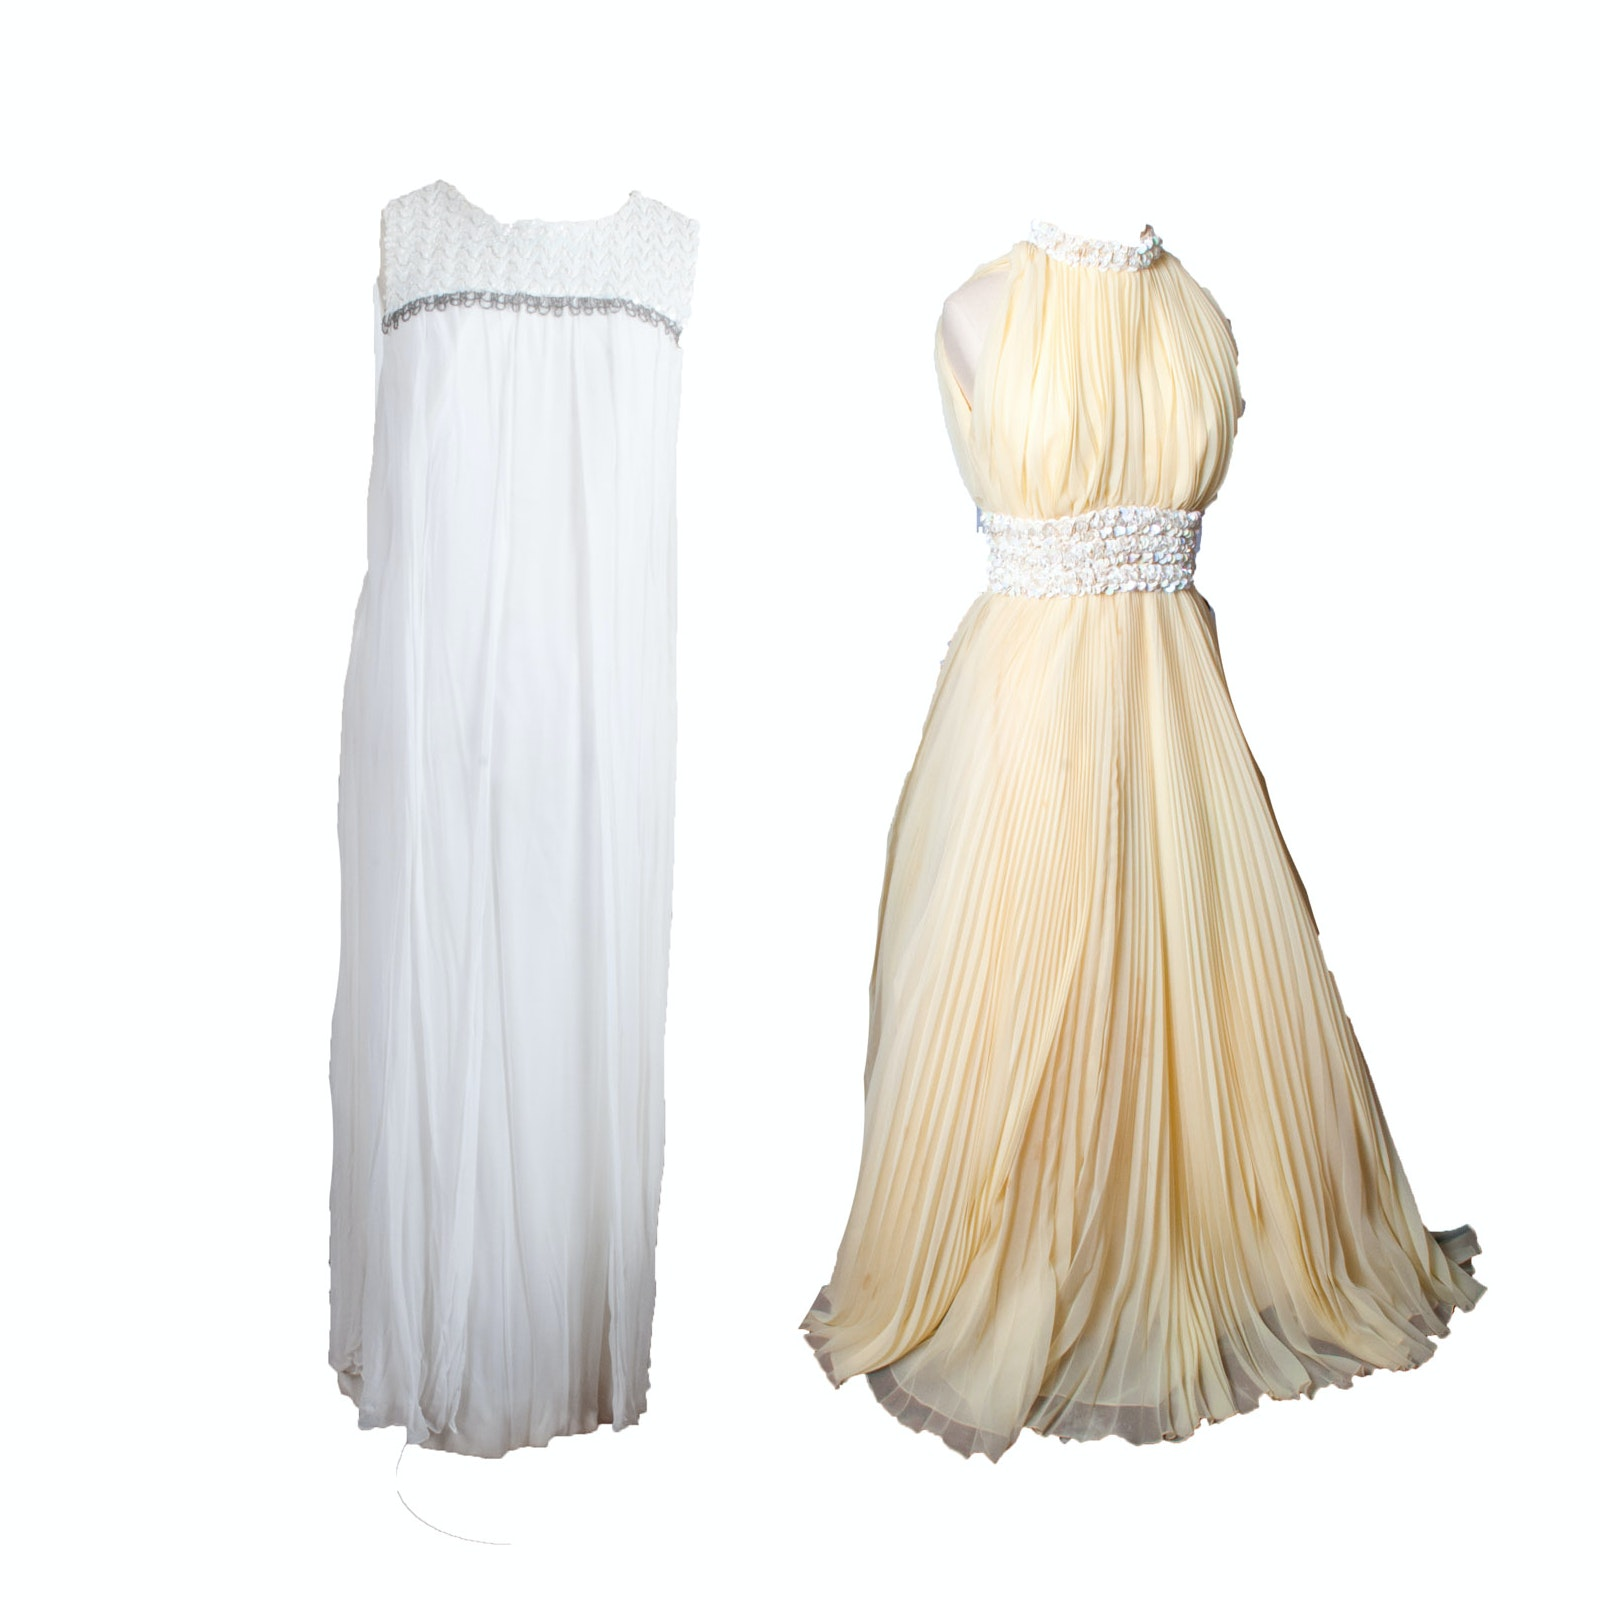 Pair of 1960s Vintage Sleeveless Evening Gowns Including Lillie Rubin